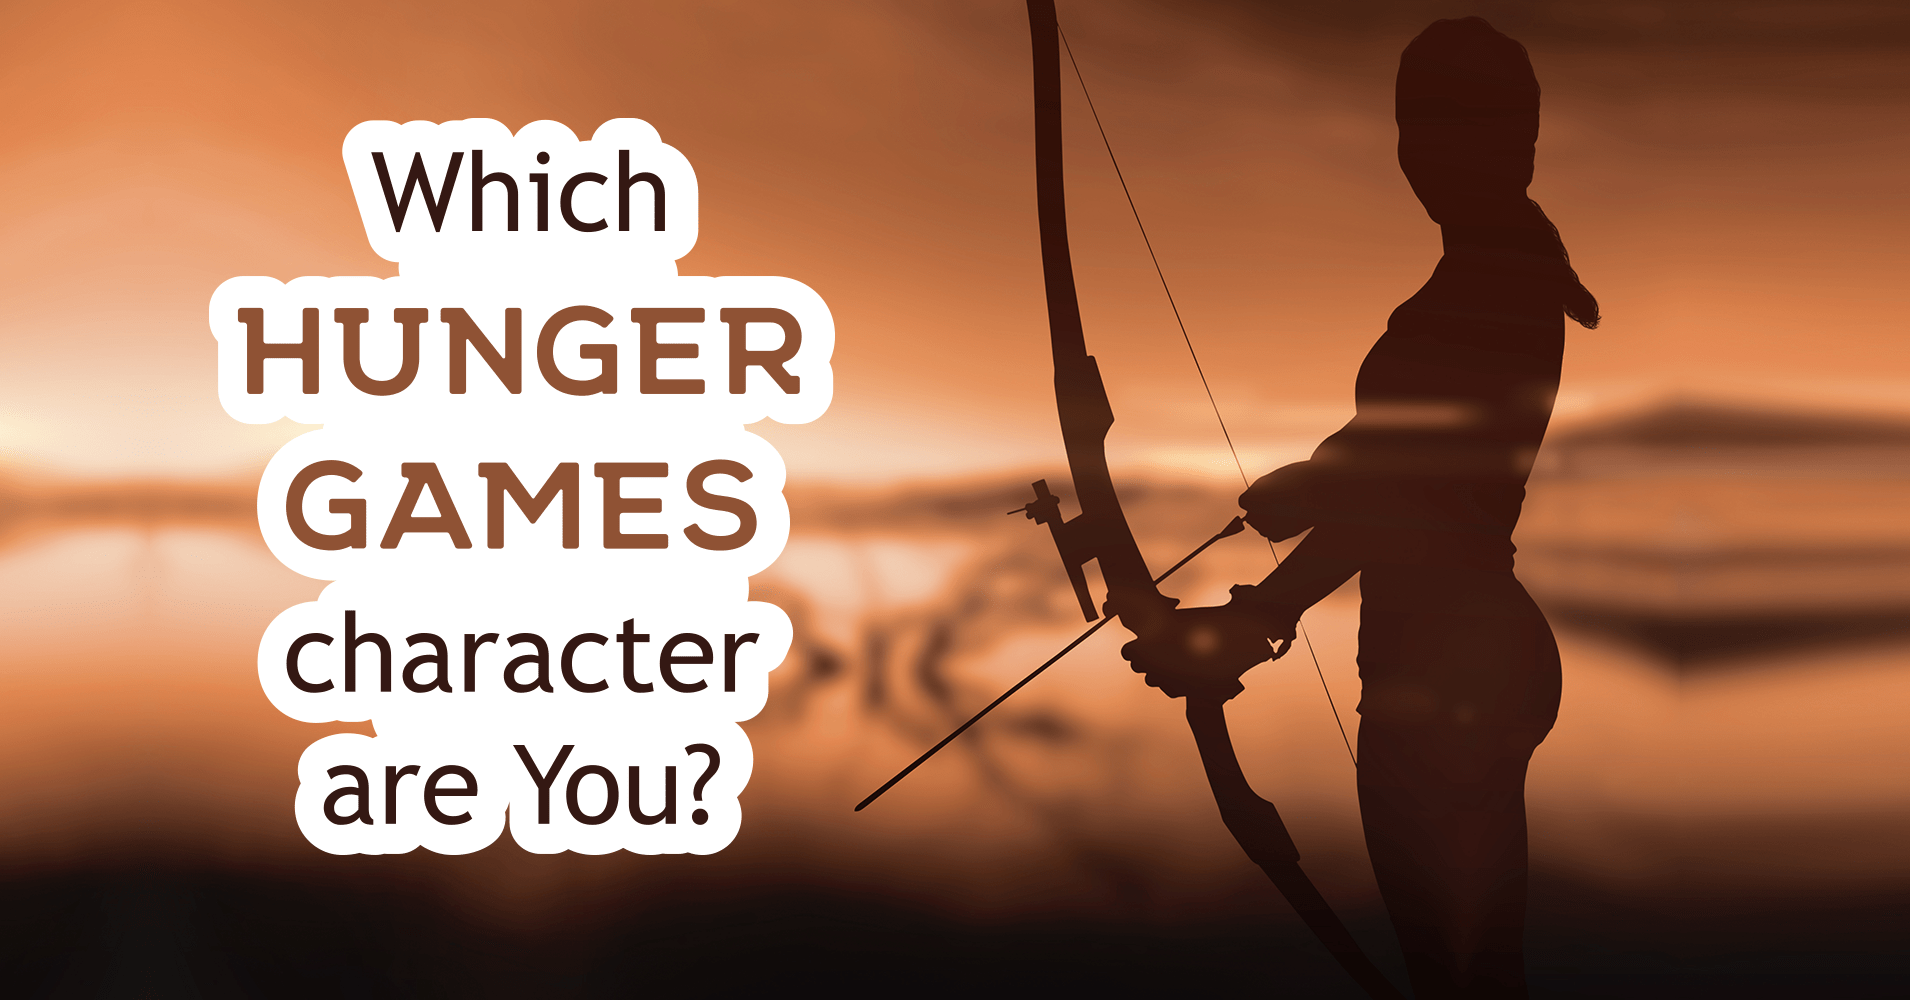 Which Hunger Games Character Are You